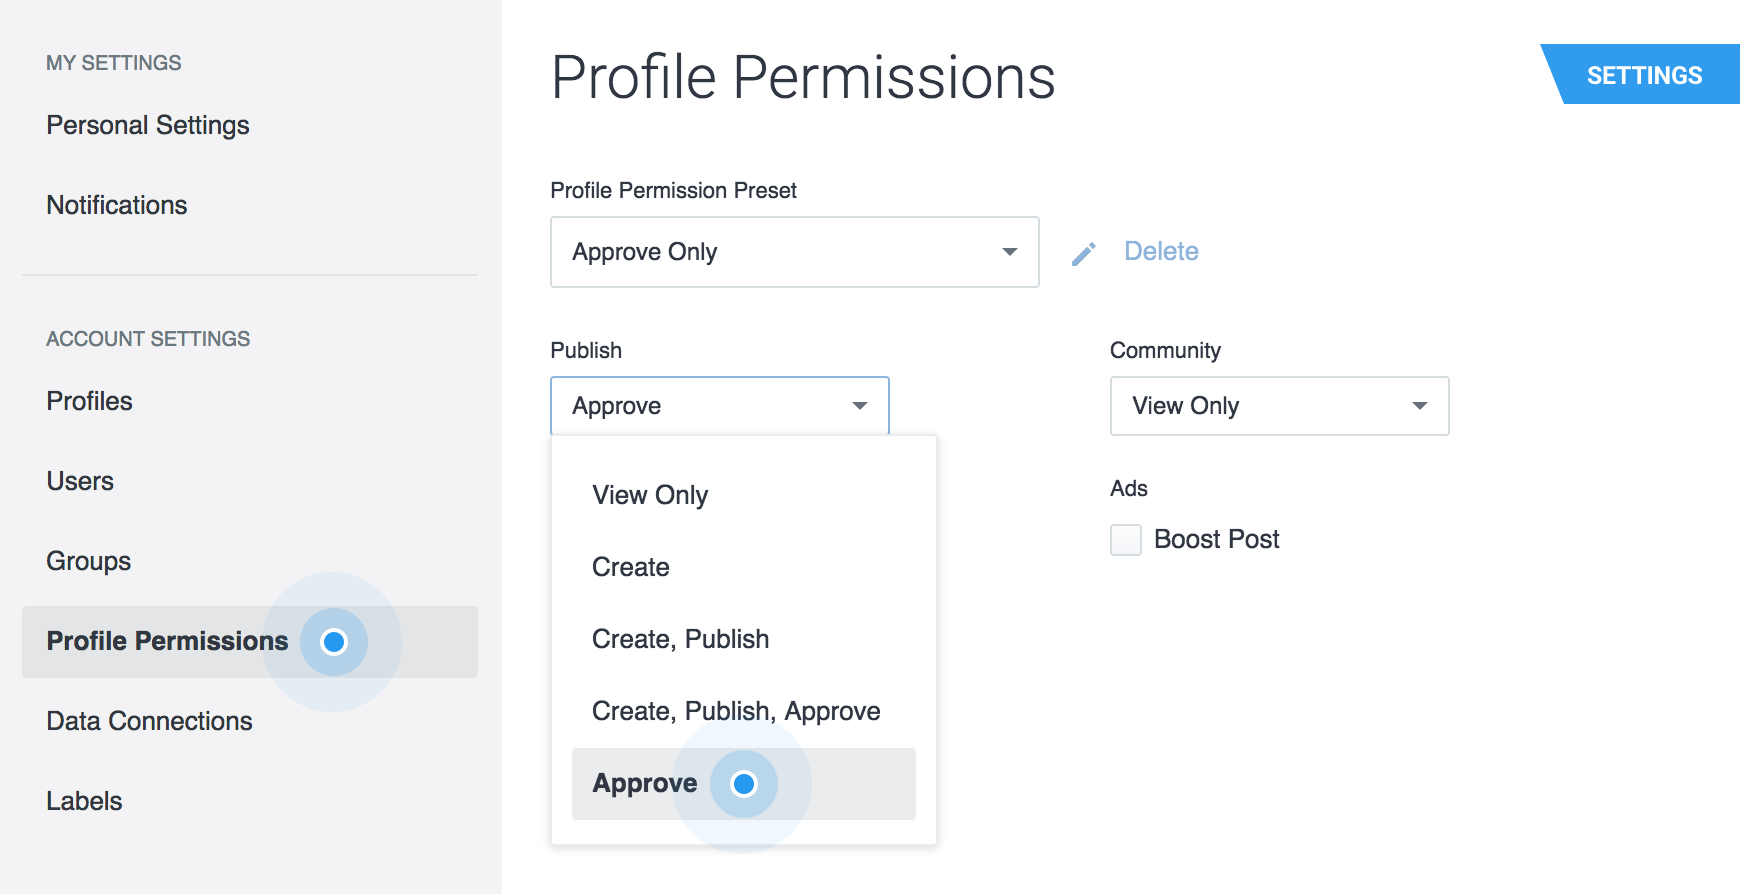 Socialbakers_Settings_Profile_Permissions_2x.png